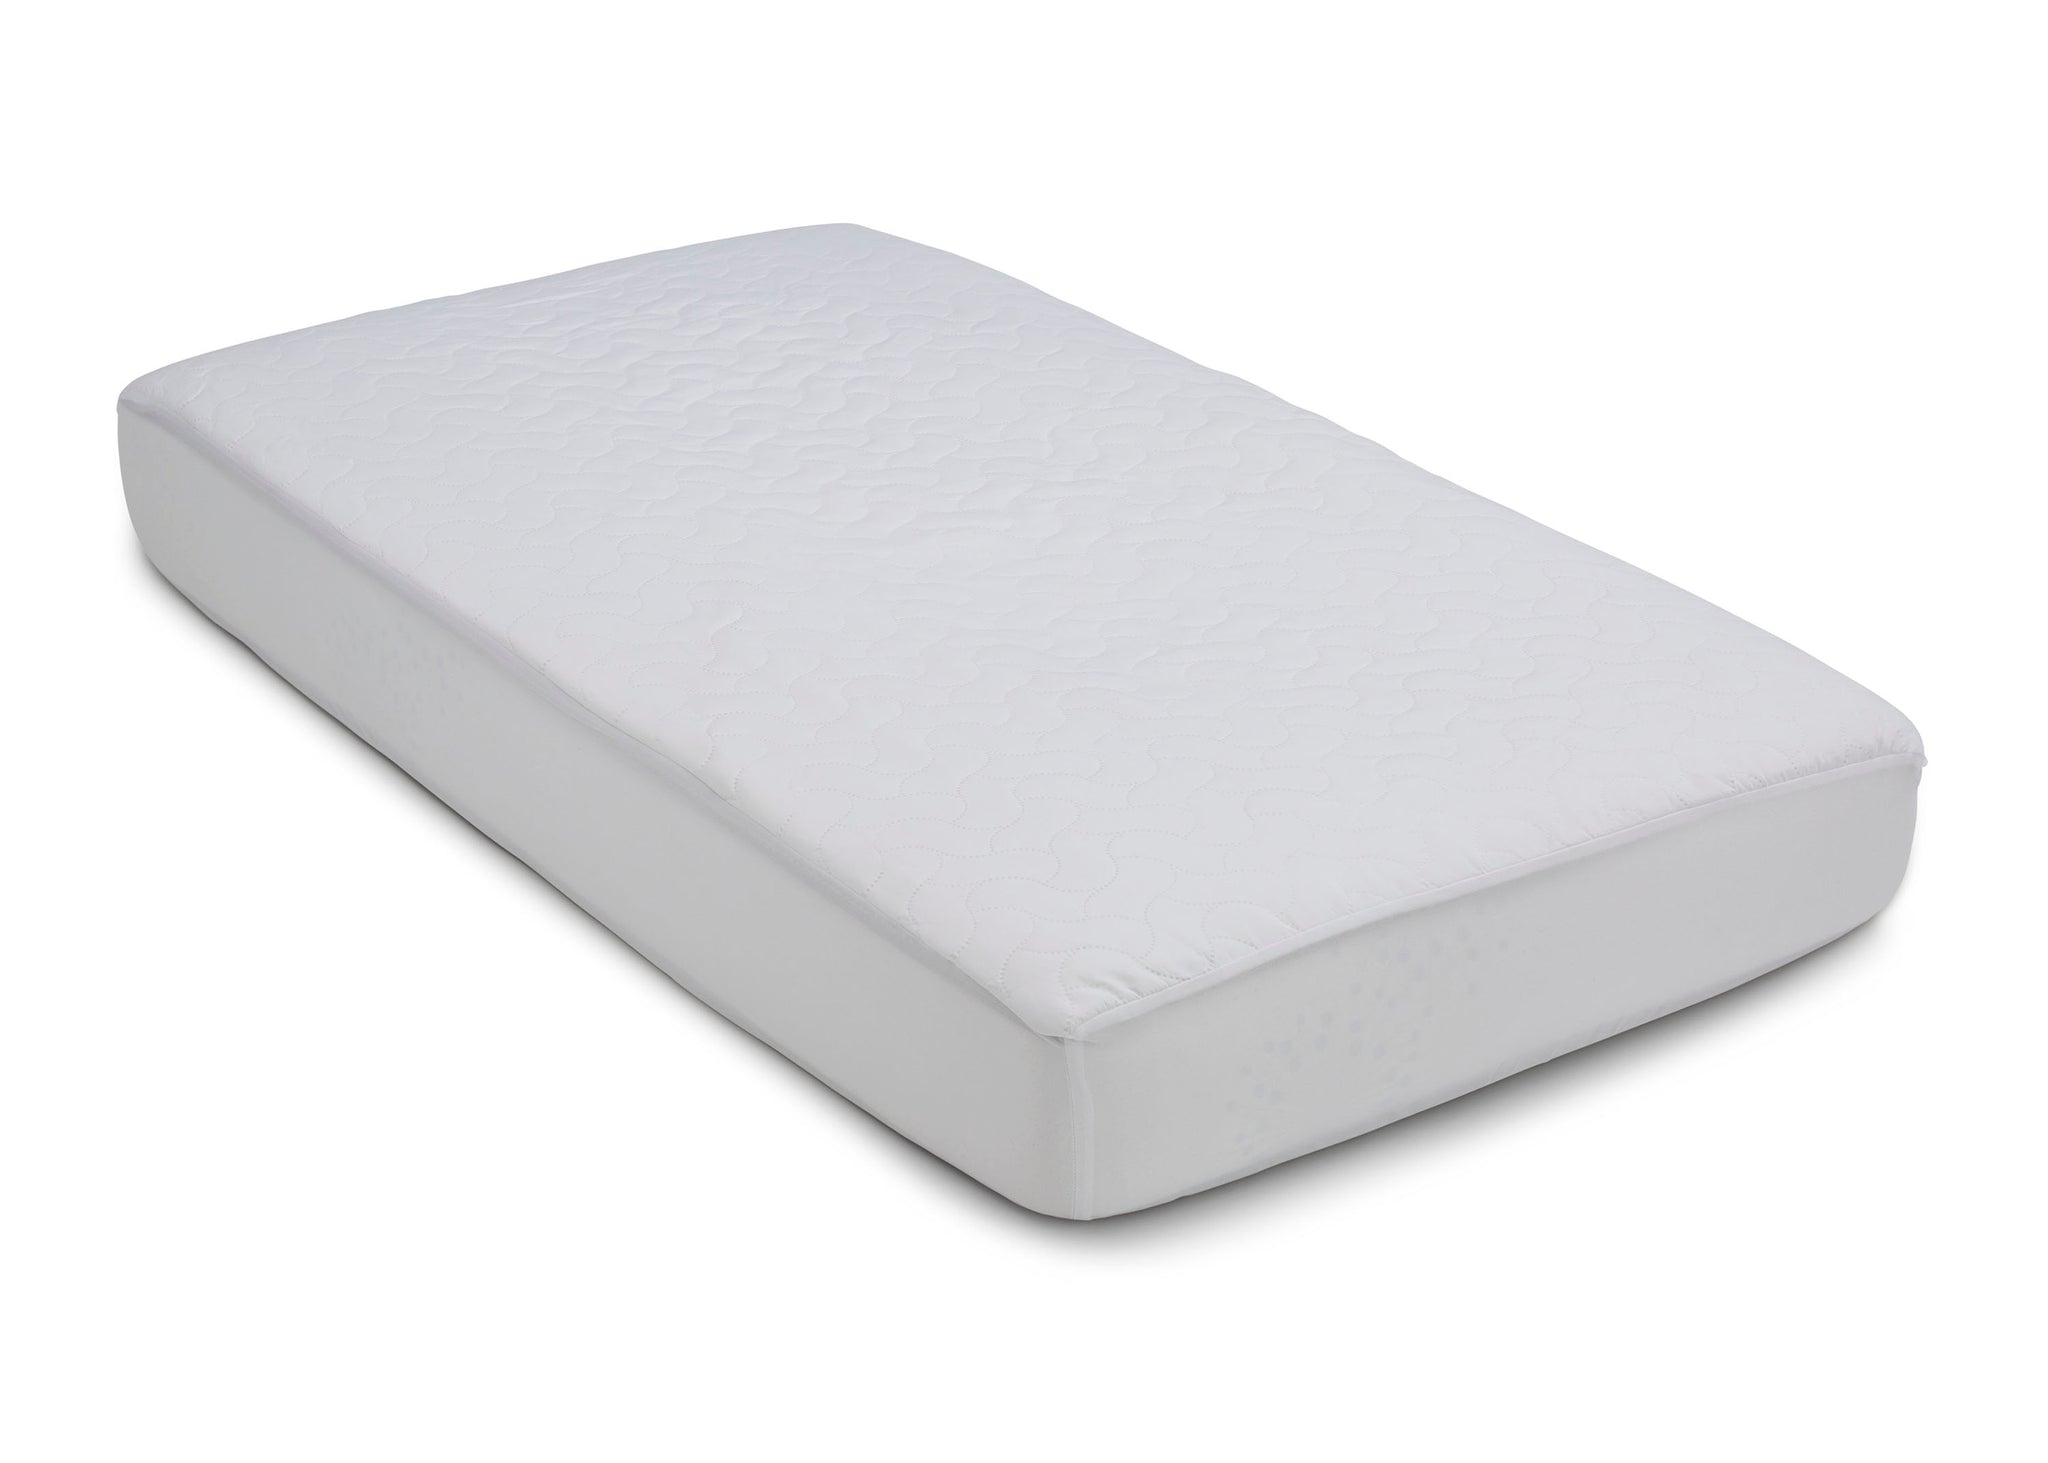 Beautyrest KIDS Fitted Crib Mattress Pad Full View No Color (NO)